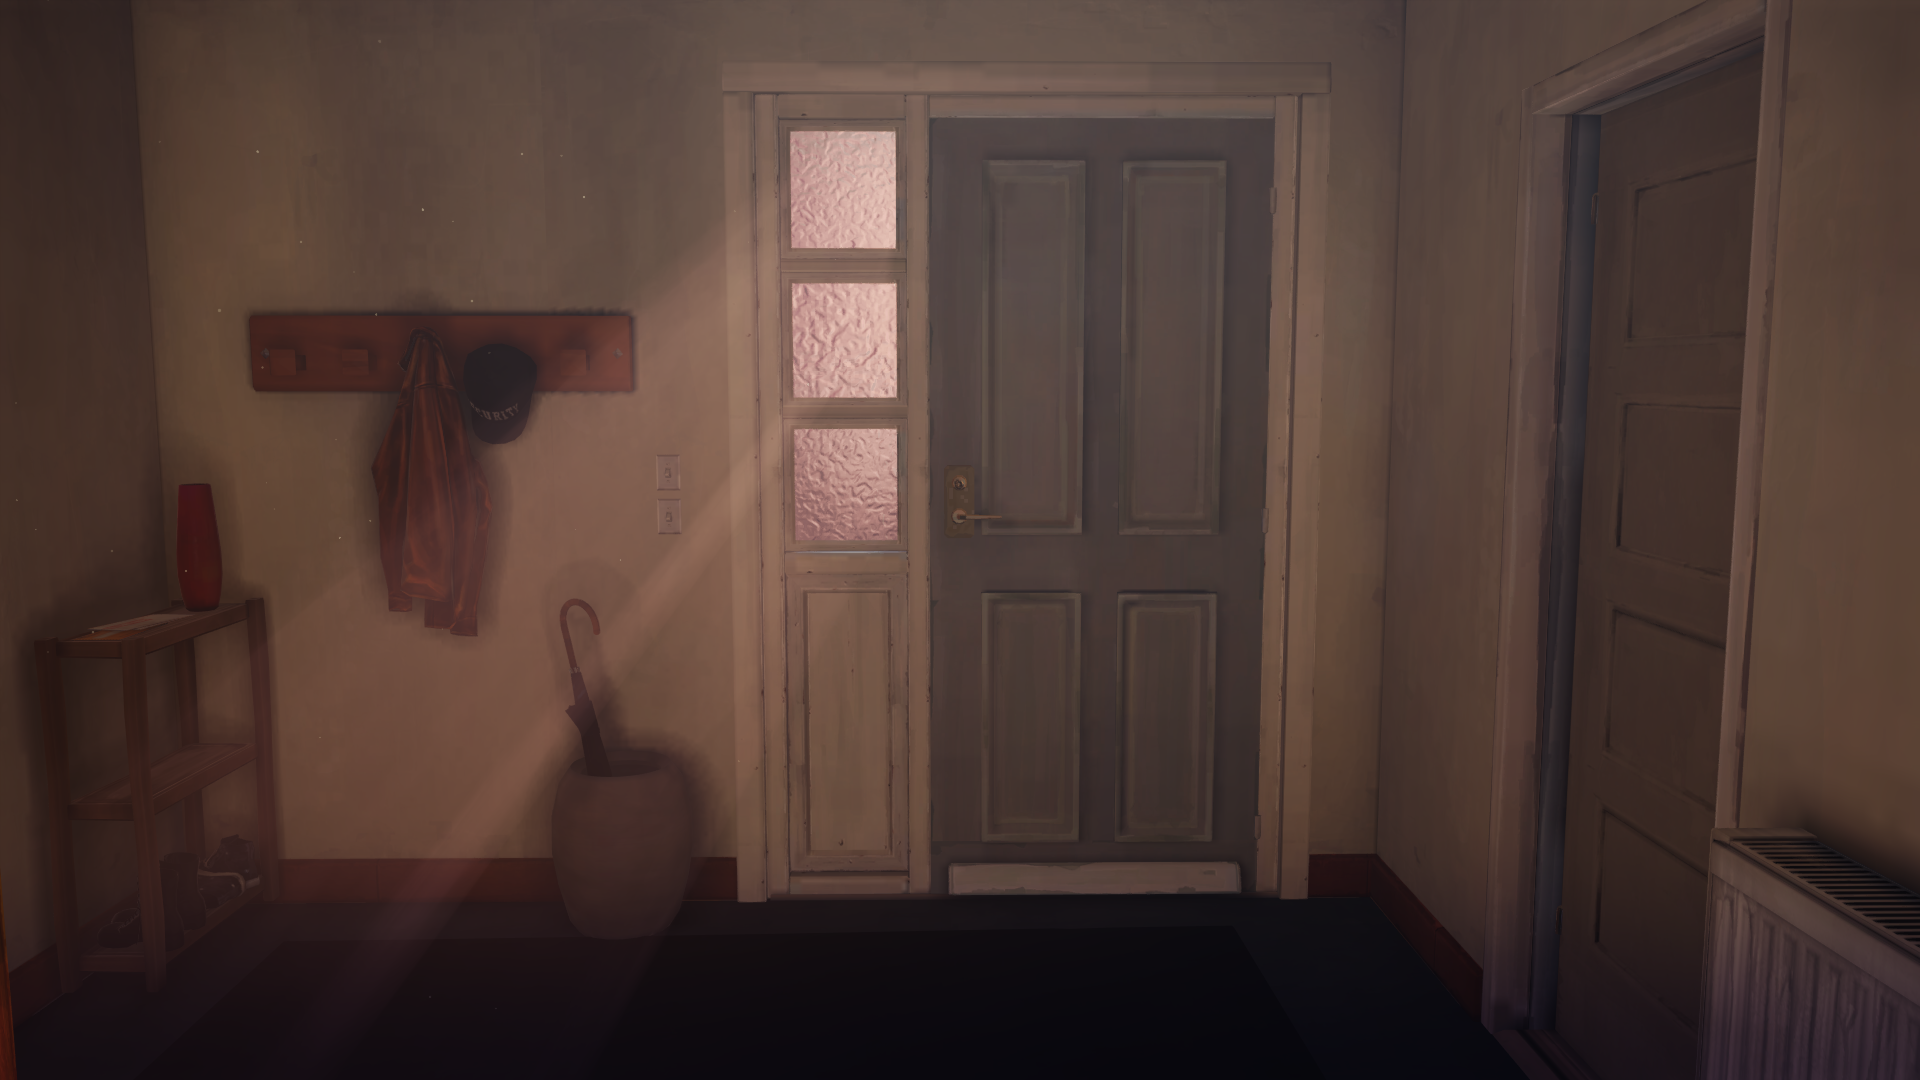 Madsenhouse-door.png & Image - Madsenhouse-door.png | Life is Strange Wiki | FANDOM powered ...